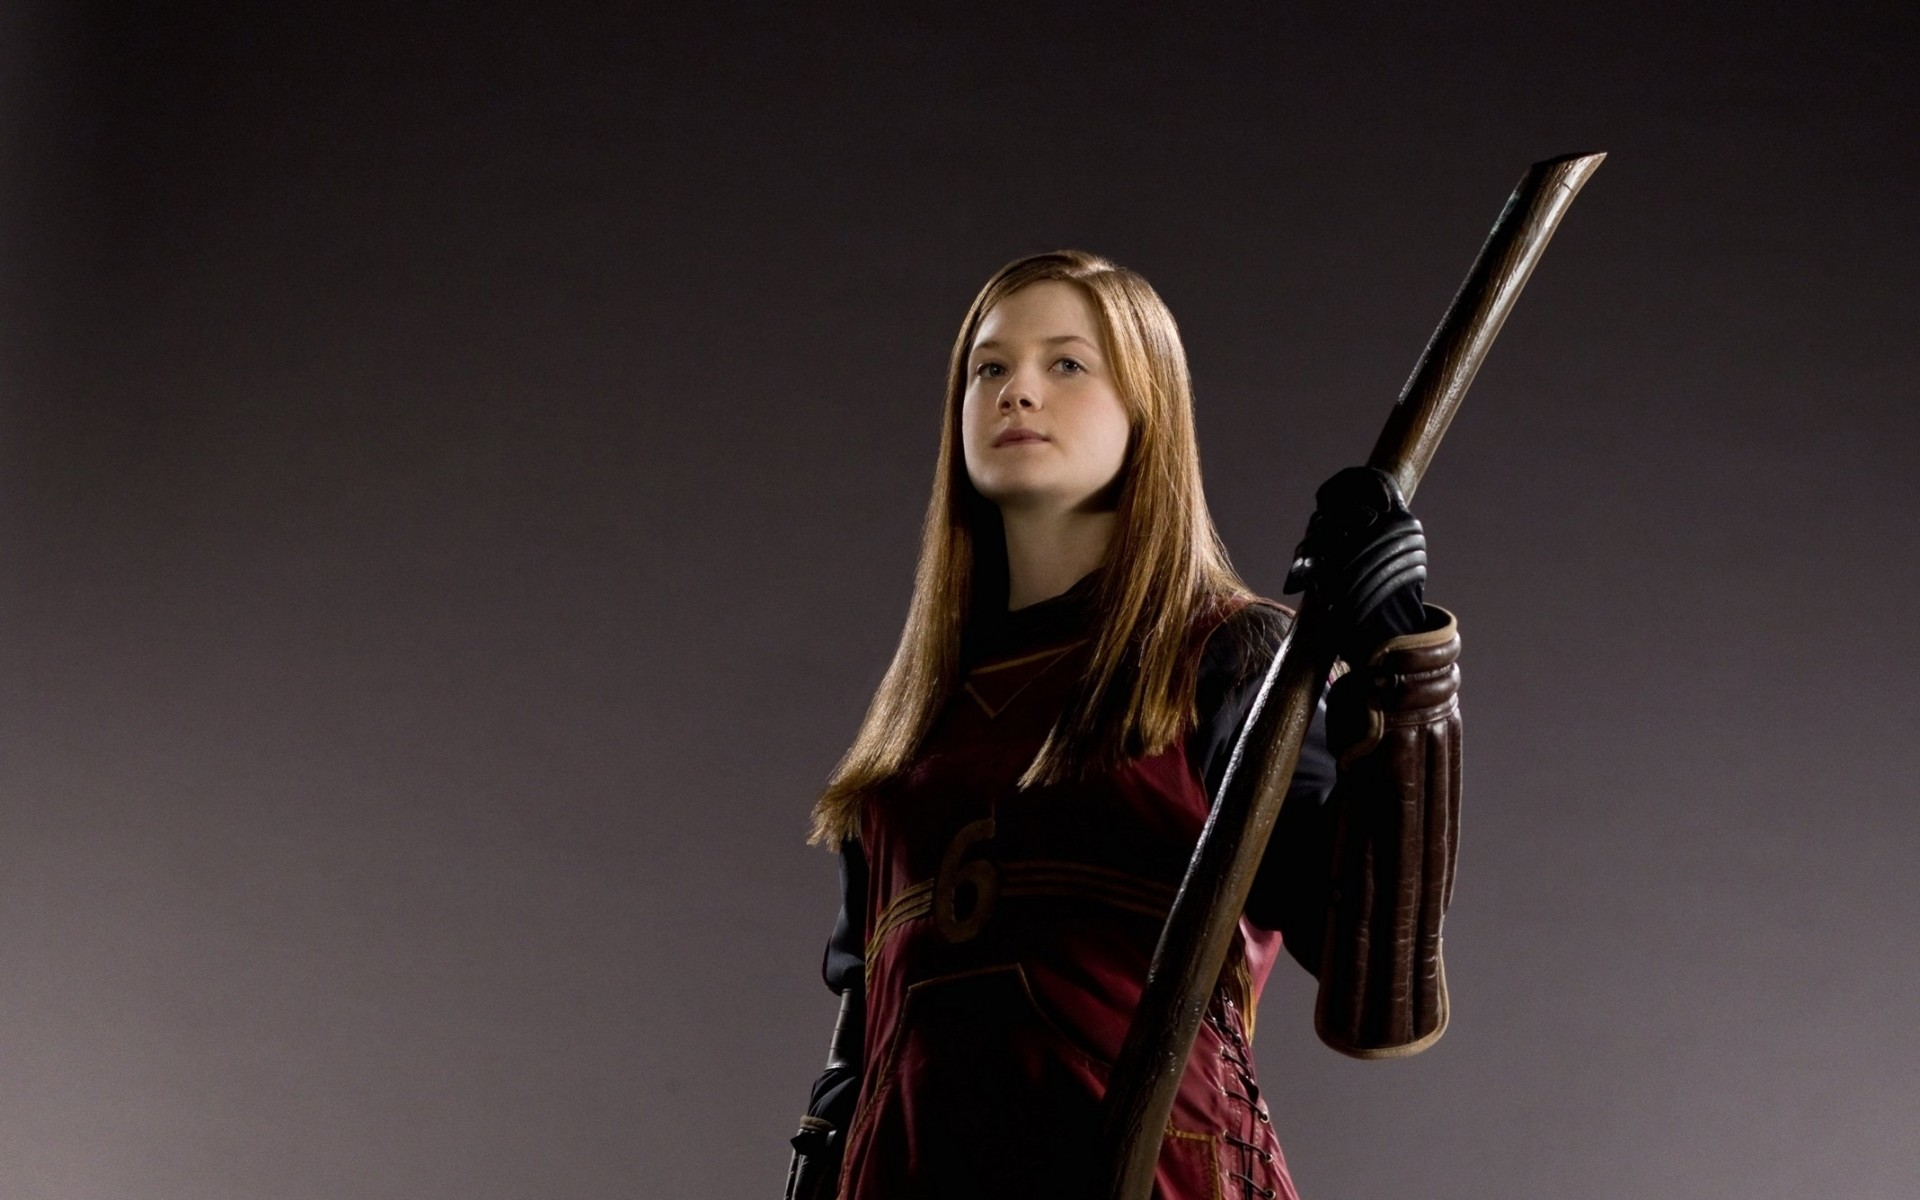 1920x1200 harry potter quidditch ginny weasley gryffindor 2137x2850 wallpaper Art HD  Wallpaper